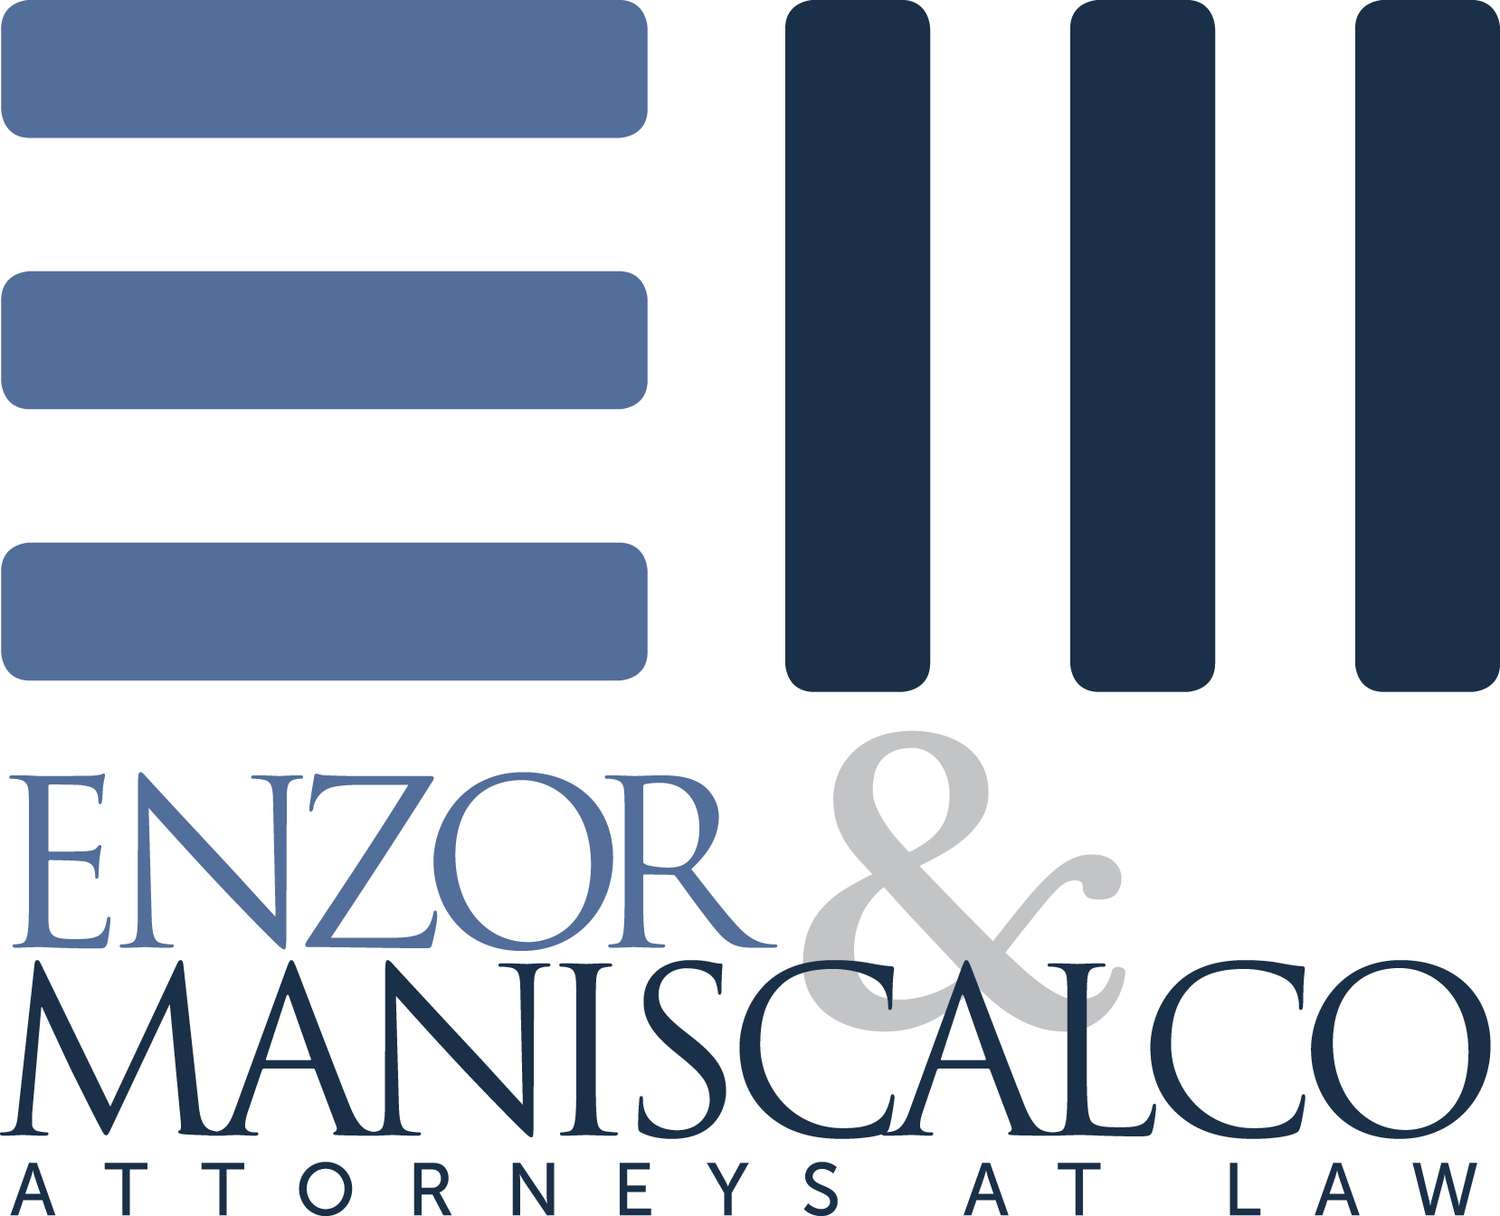 Enzor & Maniscalco East Alabama Attorneys At Law